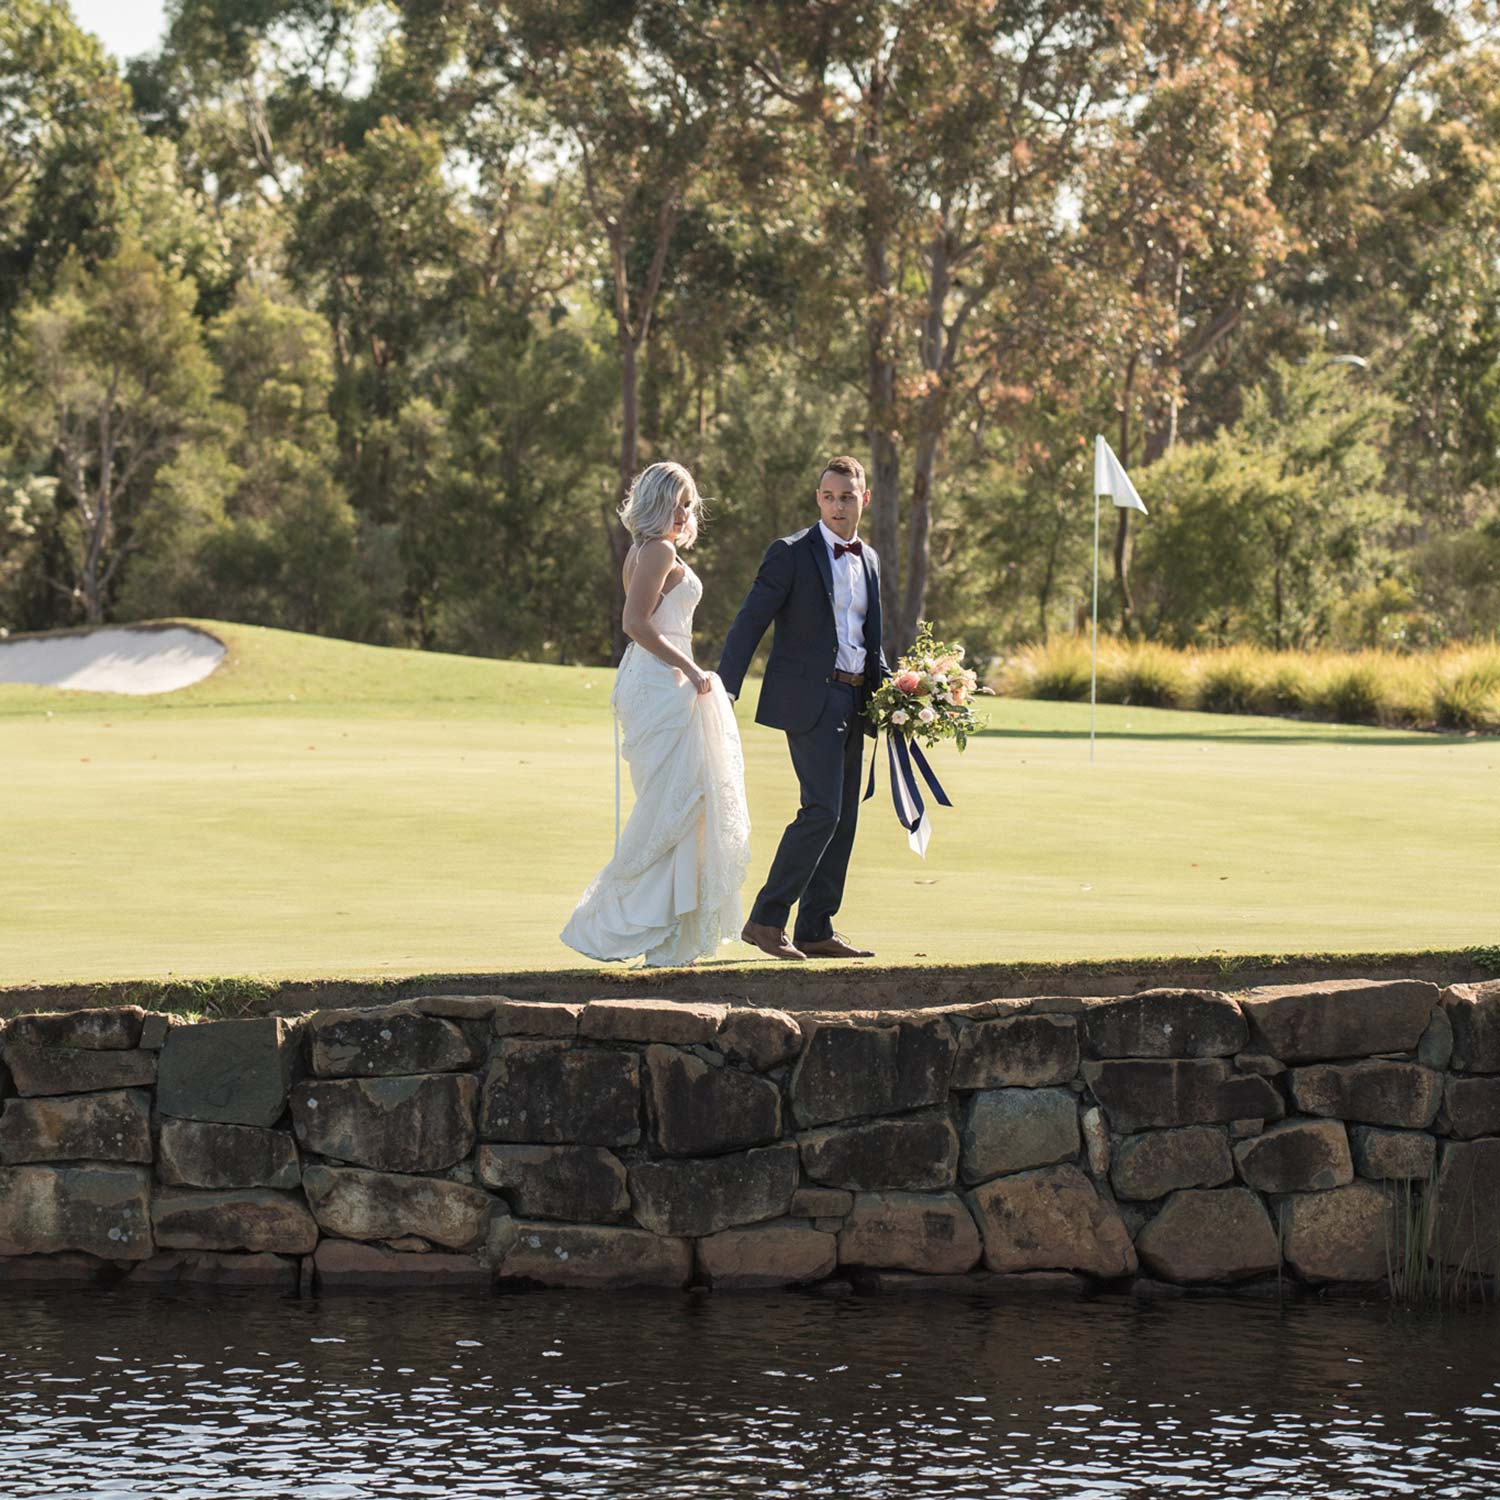 Bride and Groom Wedding Day on Golf Course